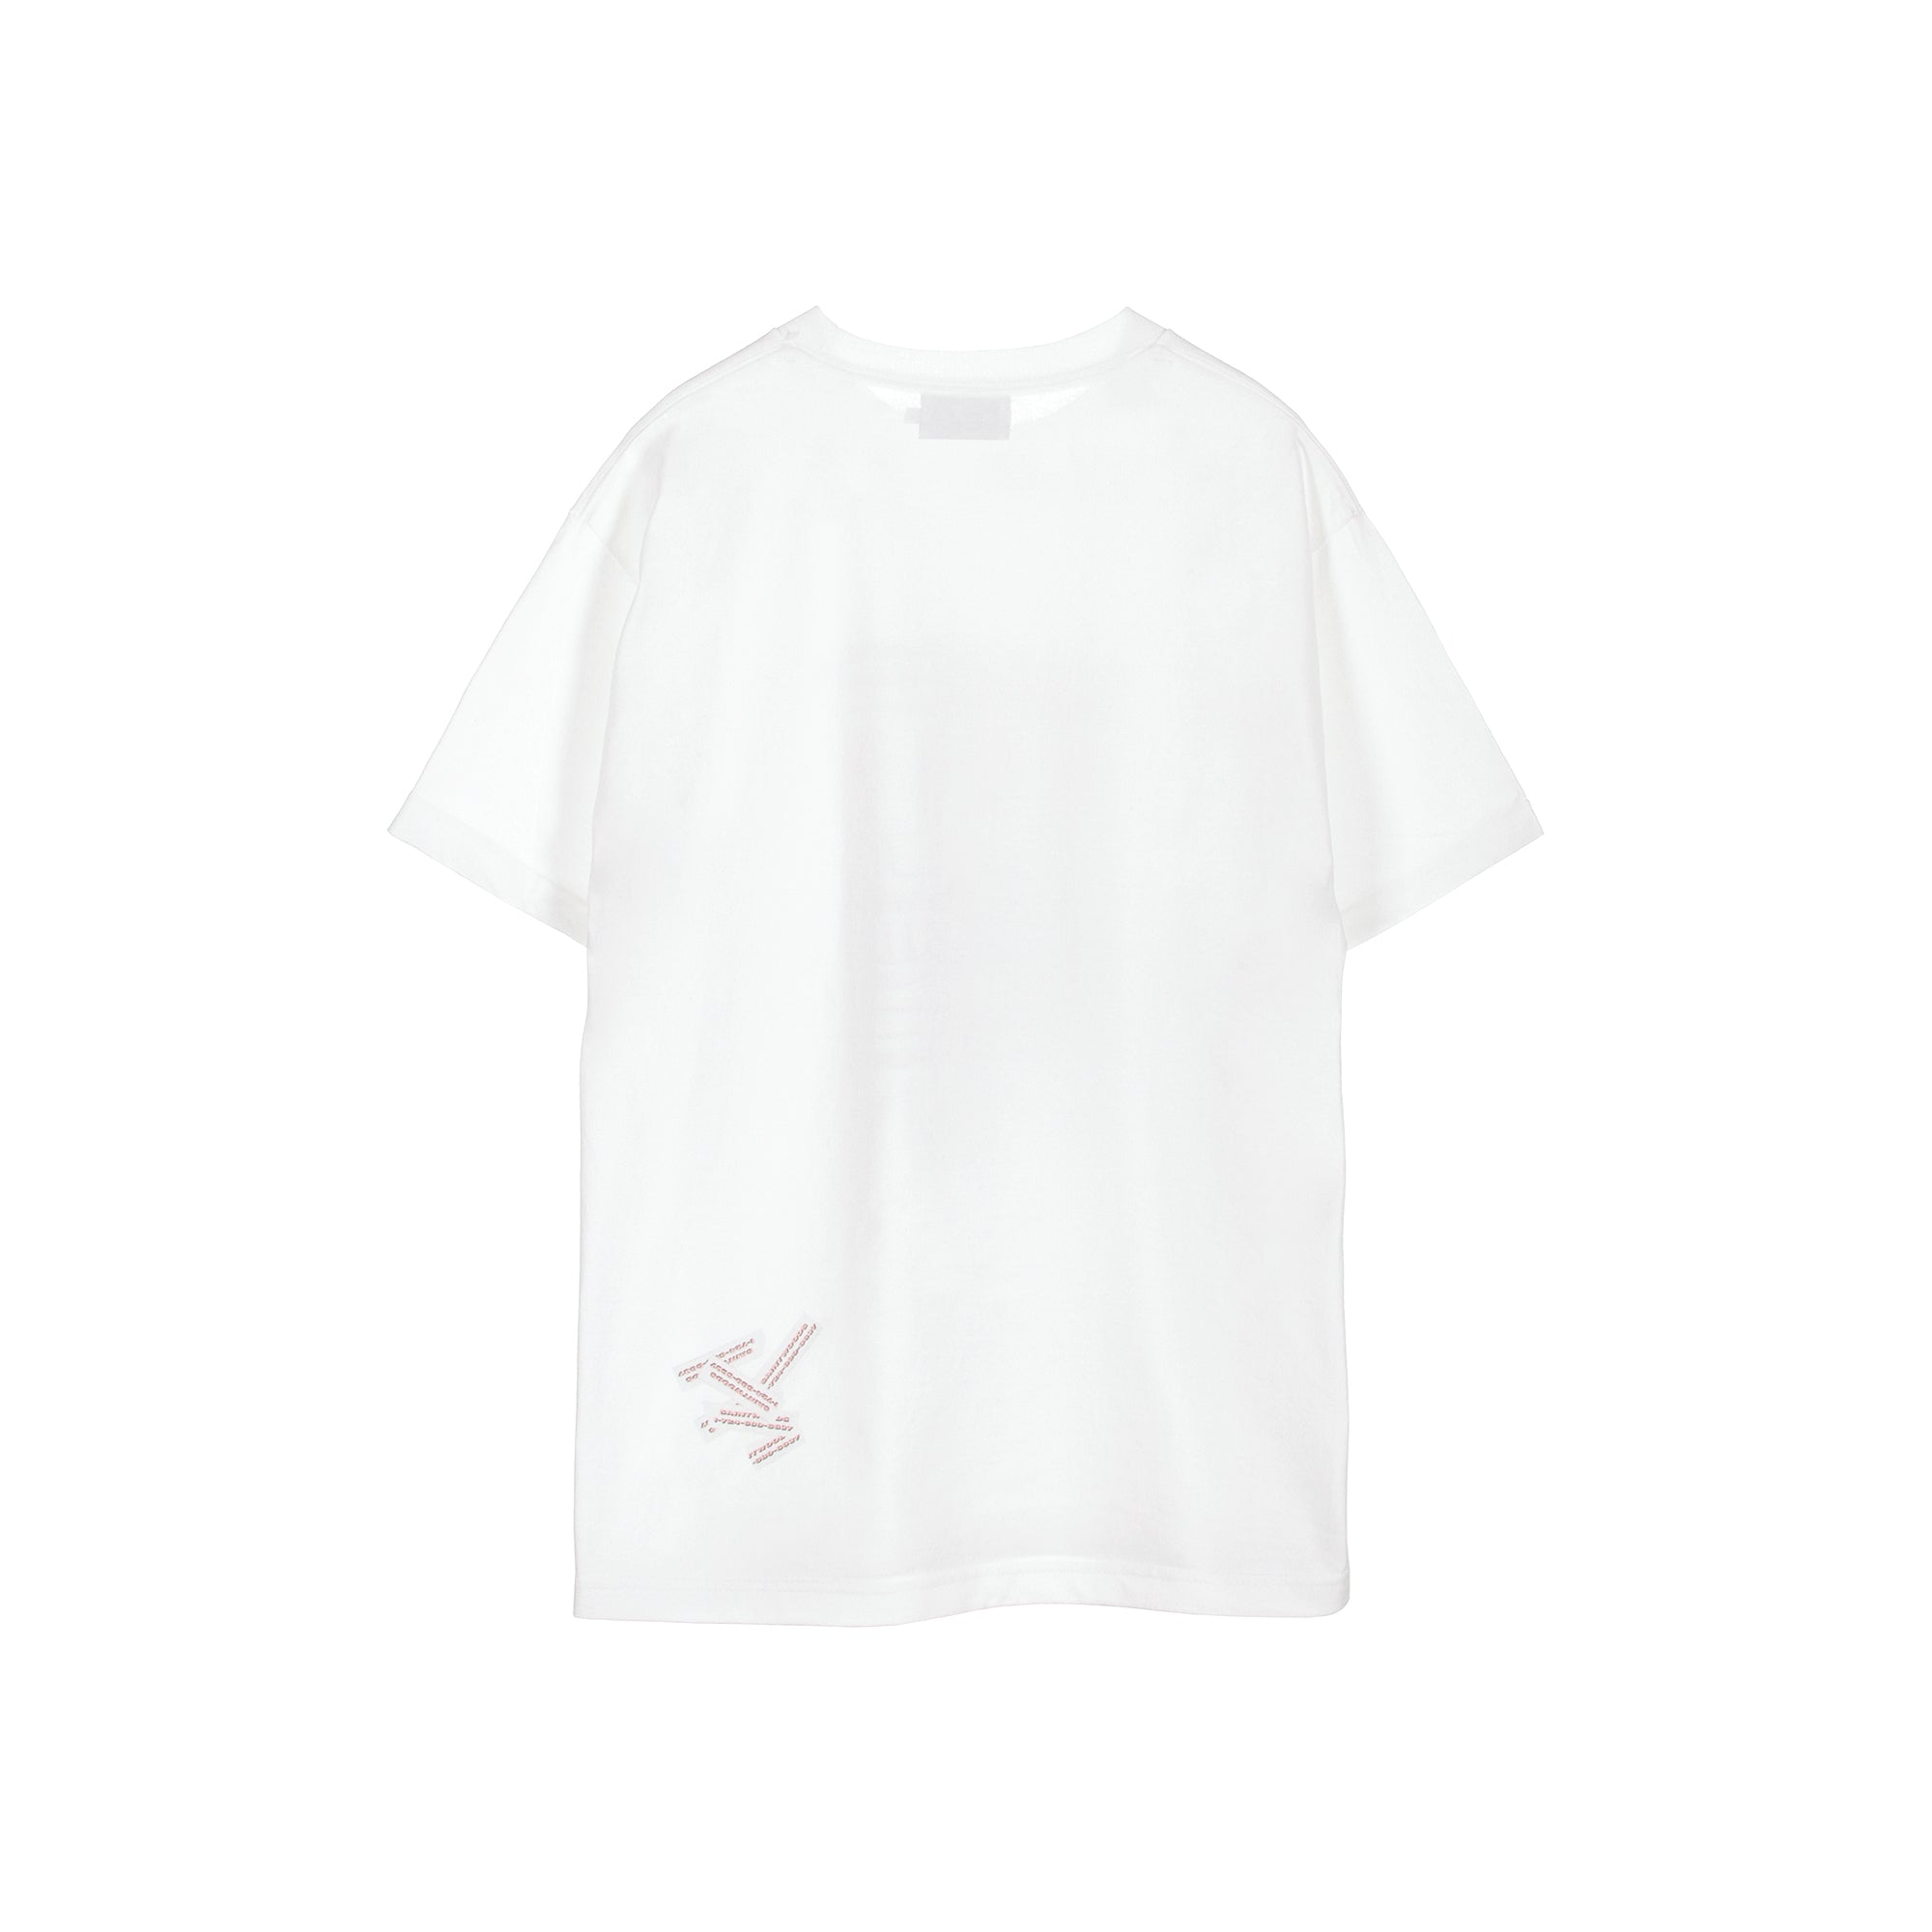 Sale Tee - T-Shirts - Saintwoods